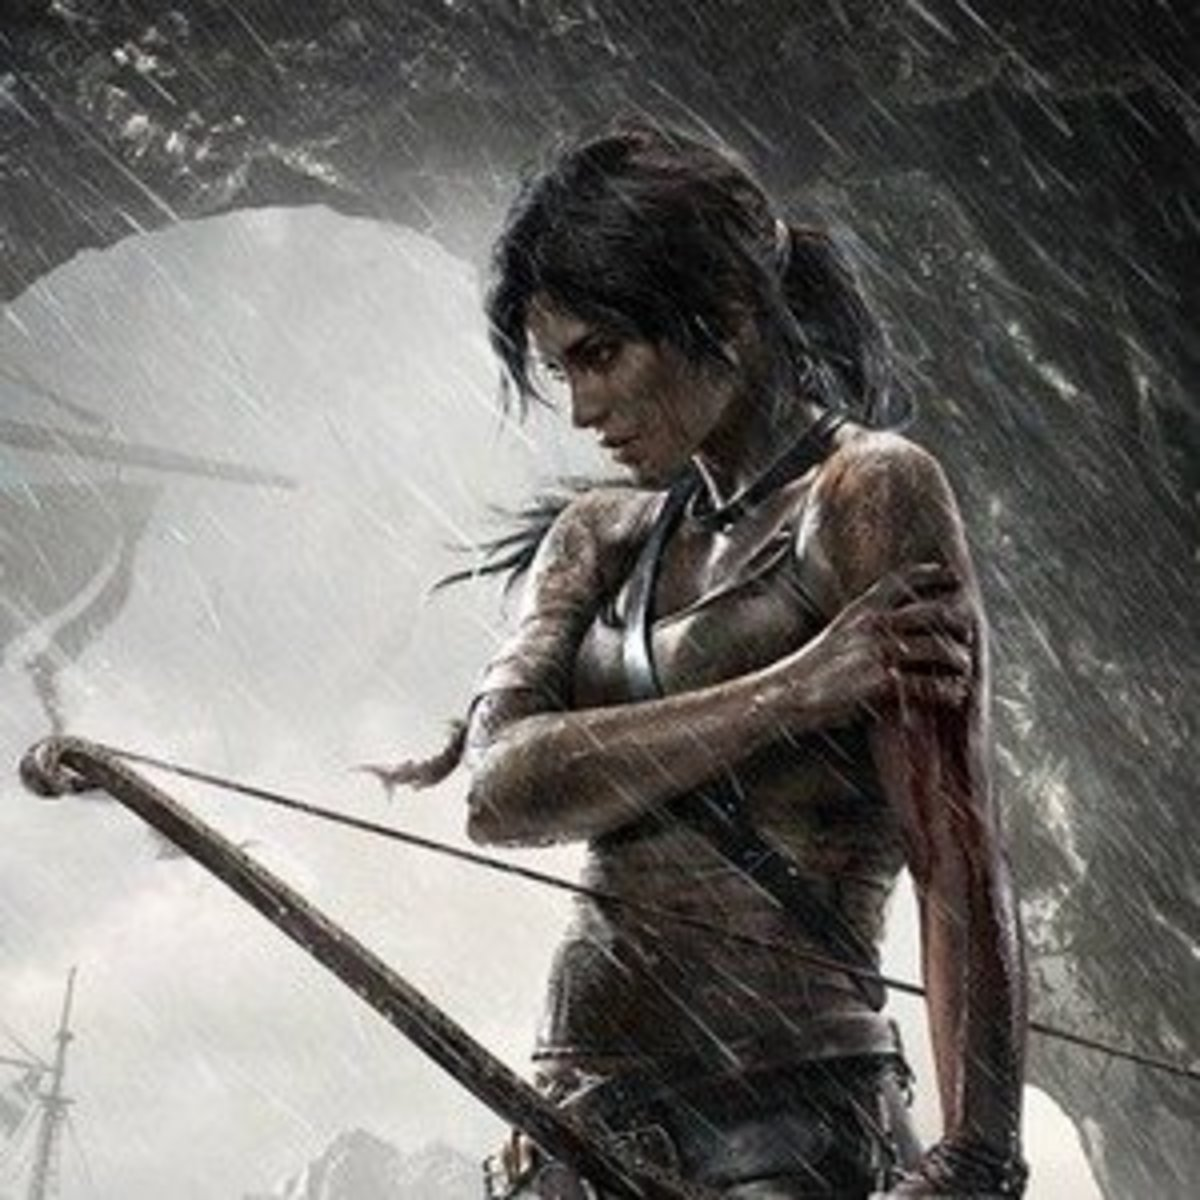 When people talk about playable female characters, Lara Croft is often the first person who springs to mind.